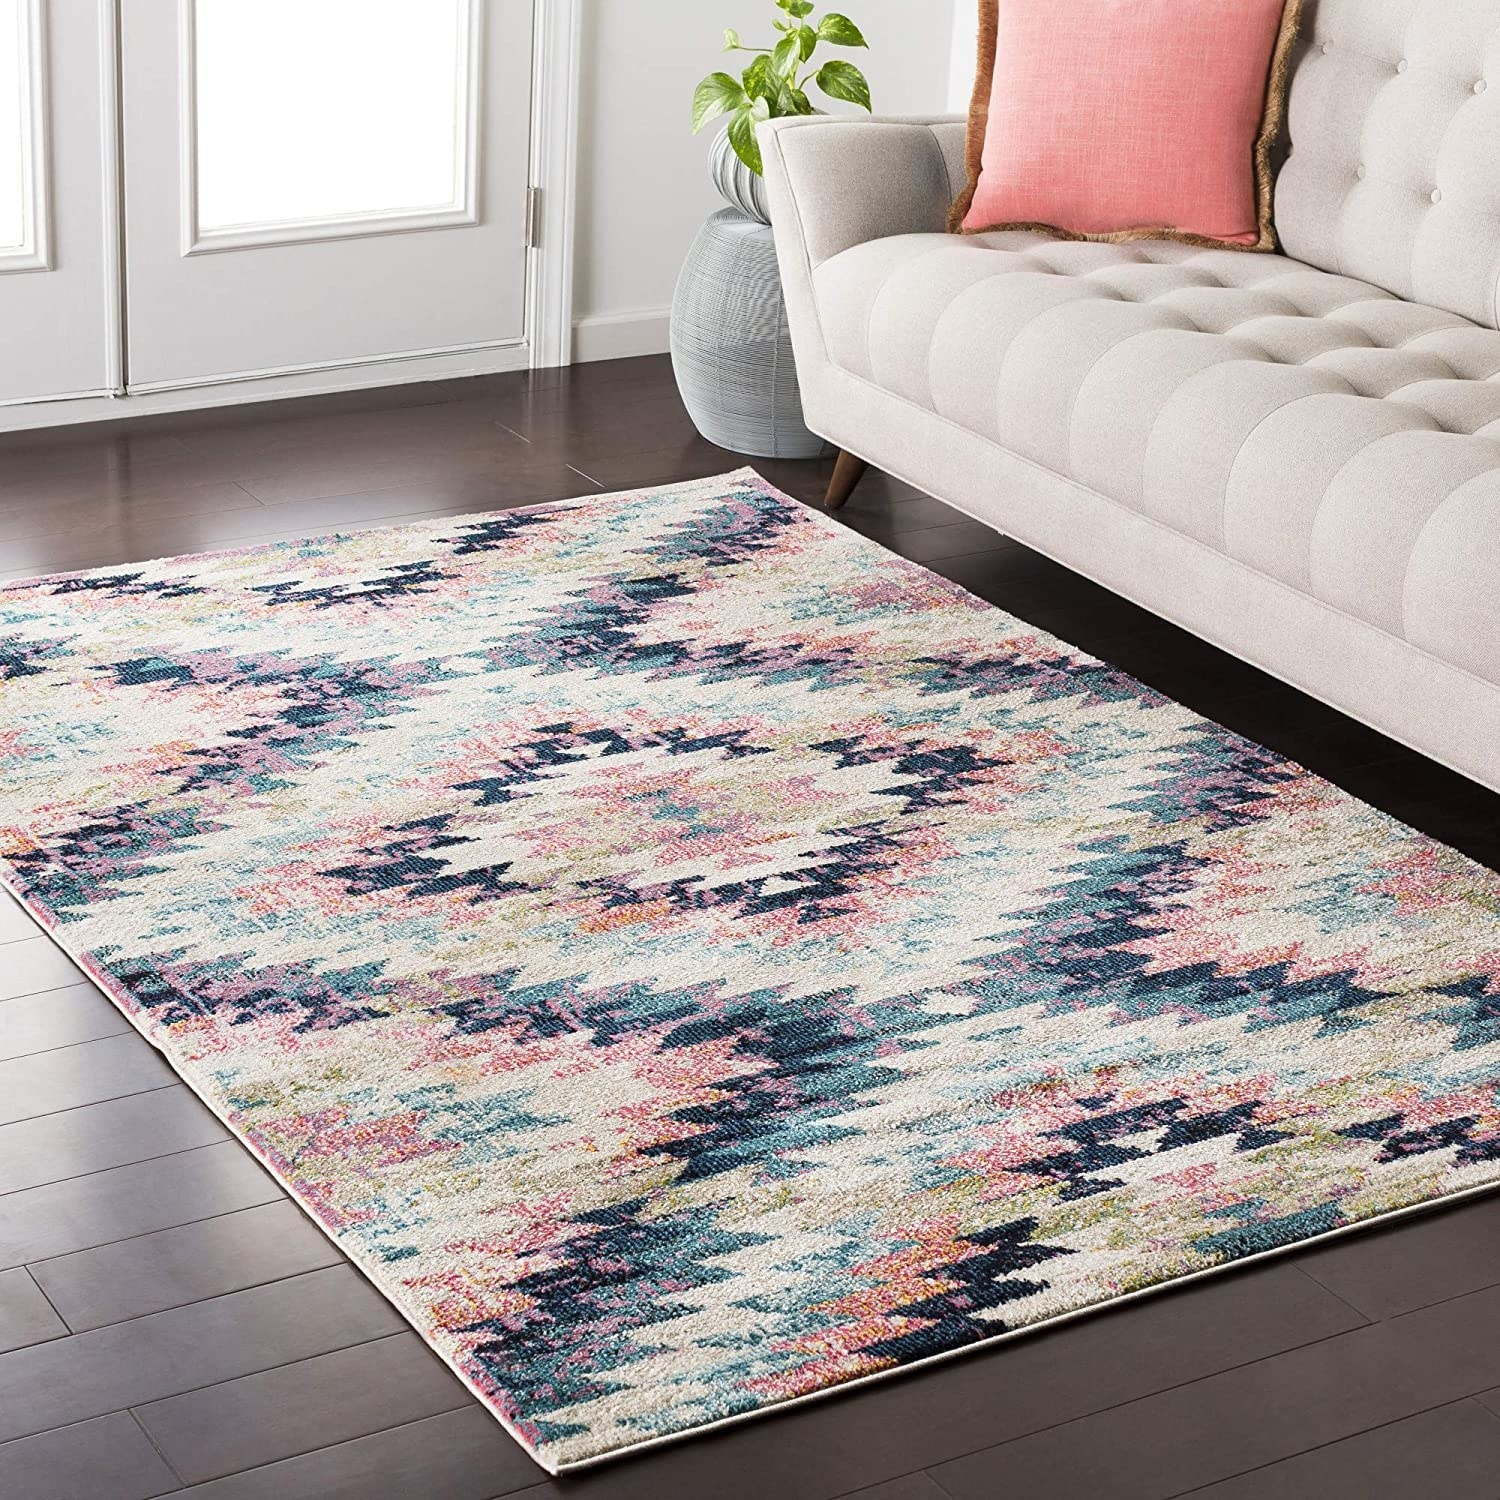 The pink, beige, and blue bohemian-style geometric rug